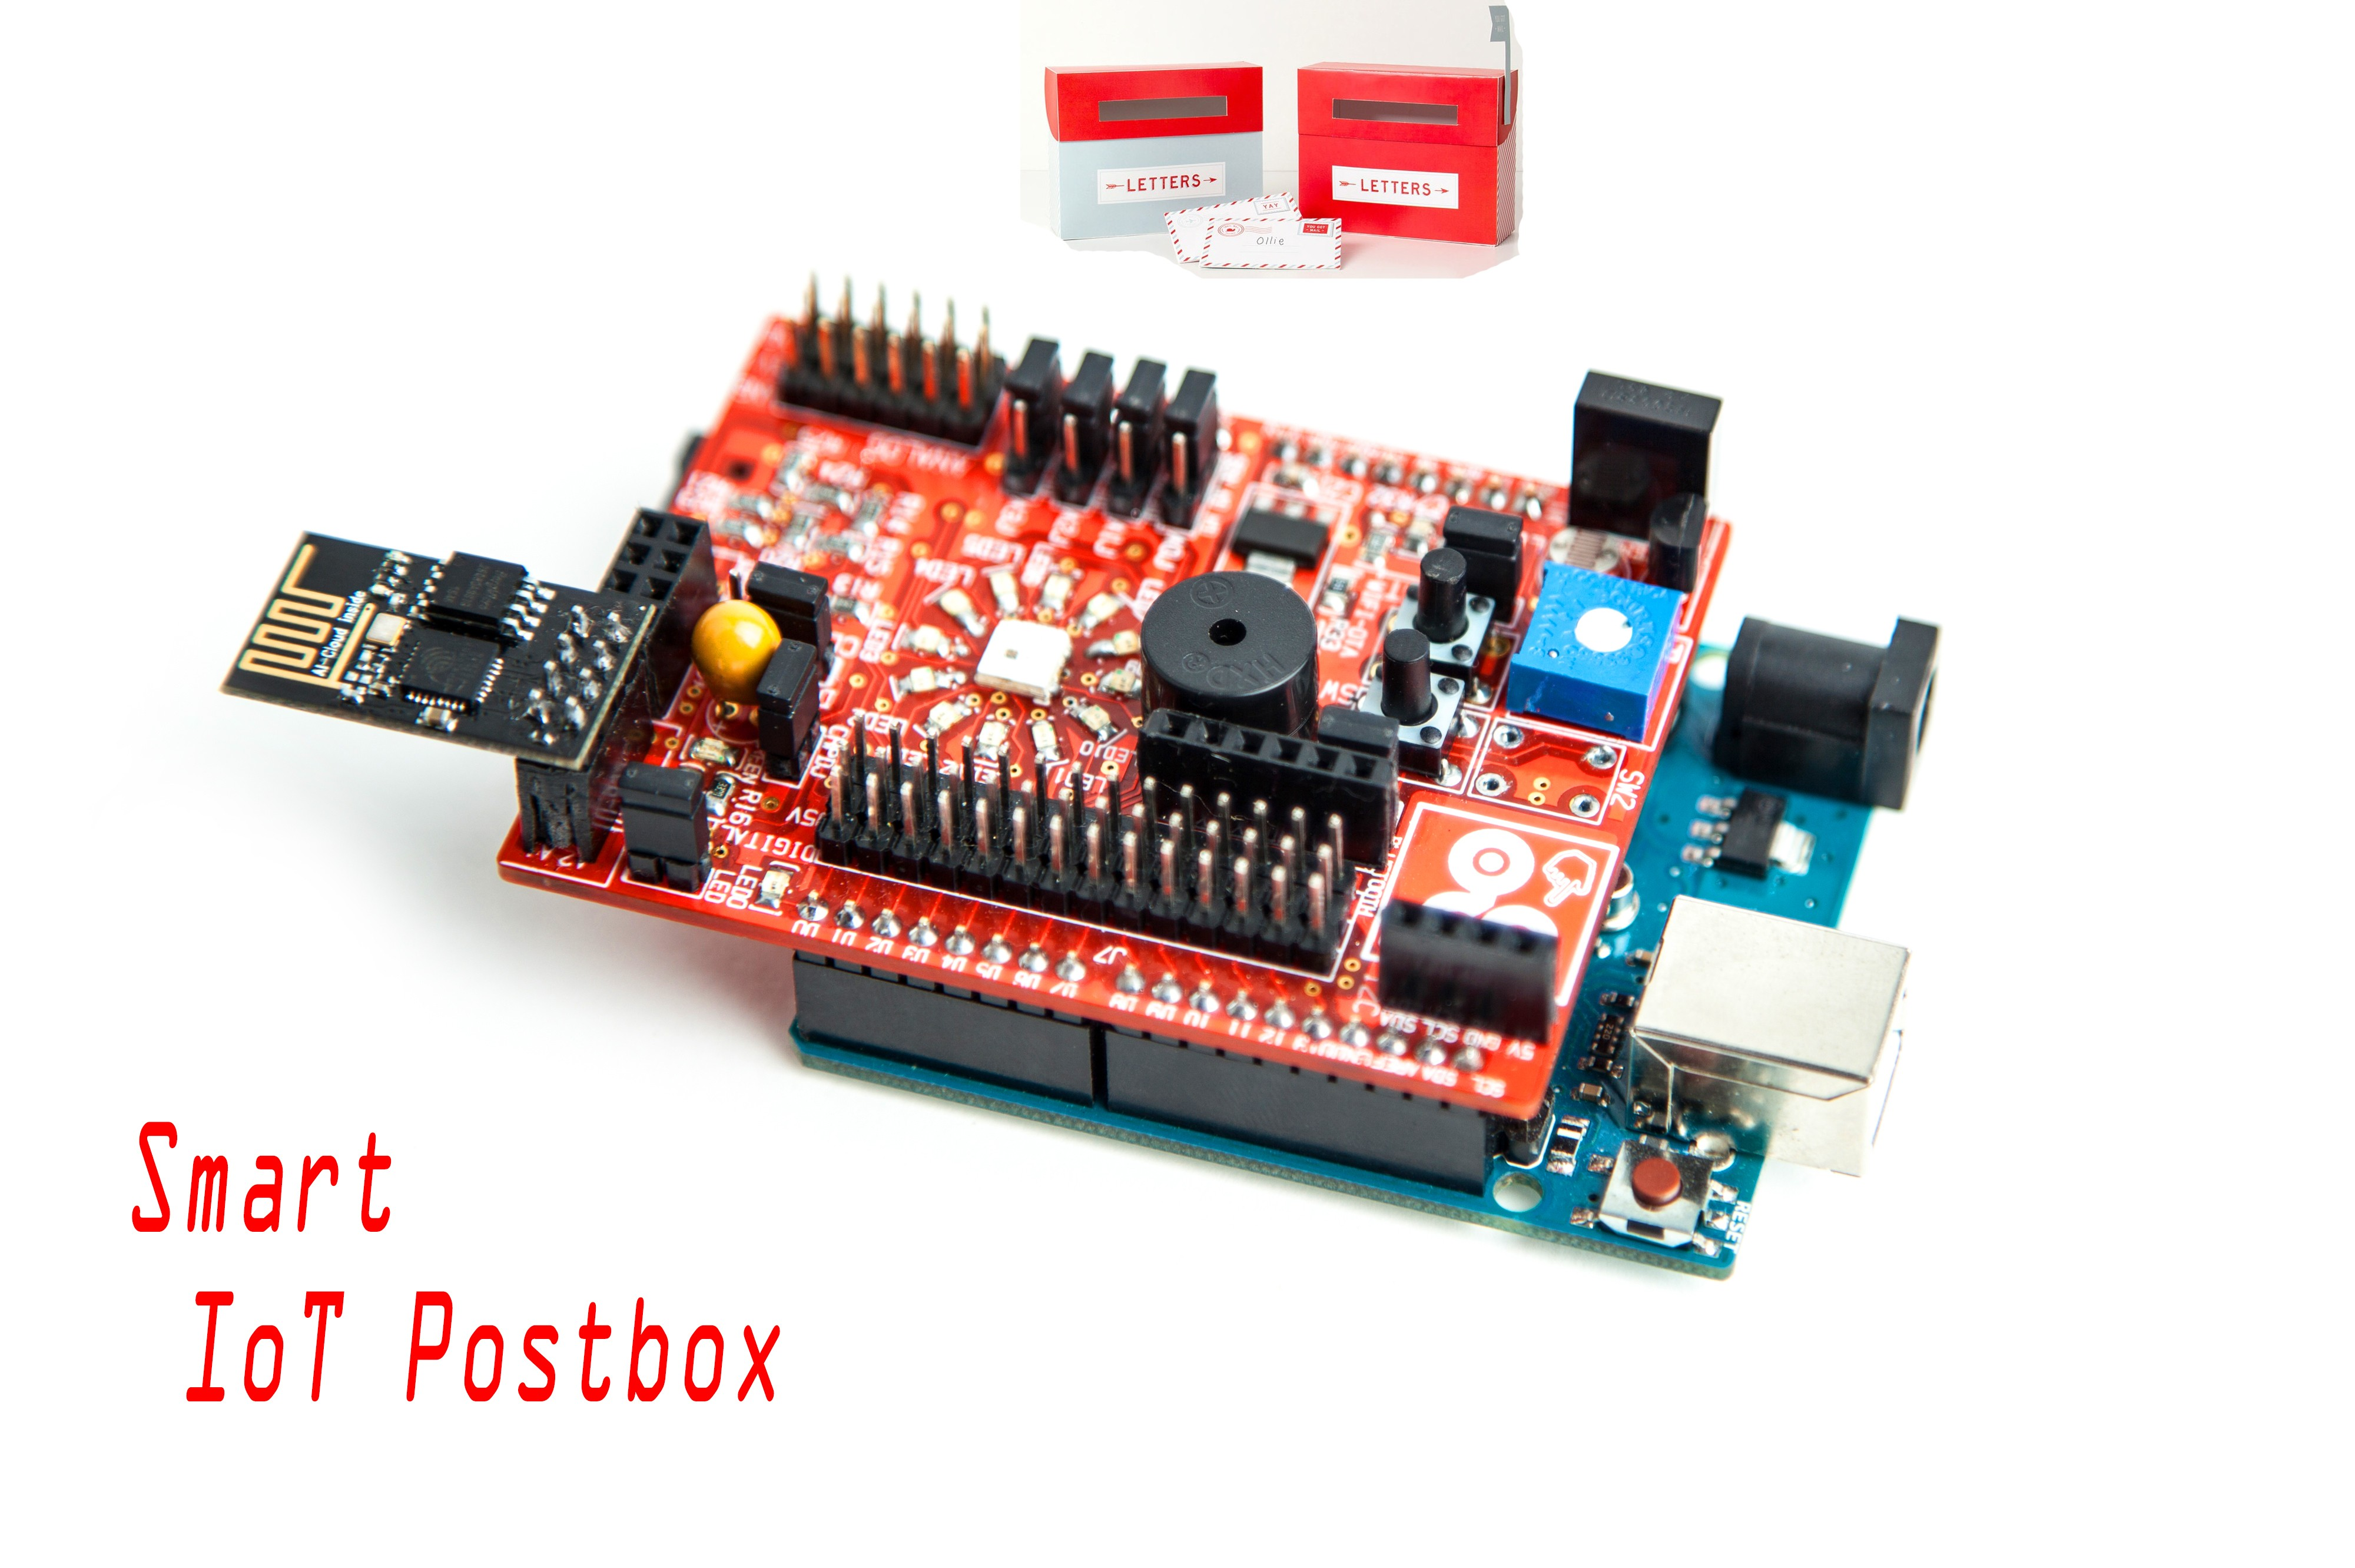 Blog Electronics Lab Free Download Of The Opensource Circuit Simulator Geckocircuits Smart Iot Postbox Using Arduino And Idiotware Shield